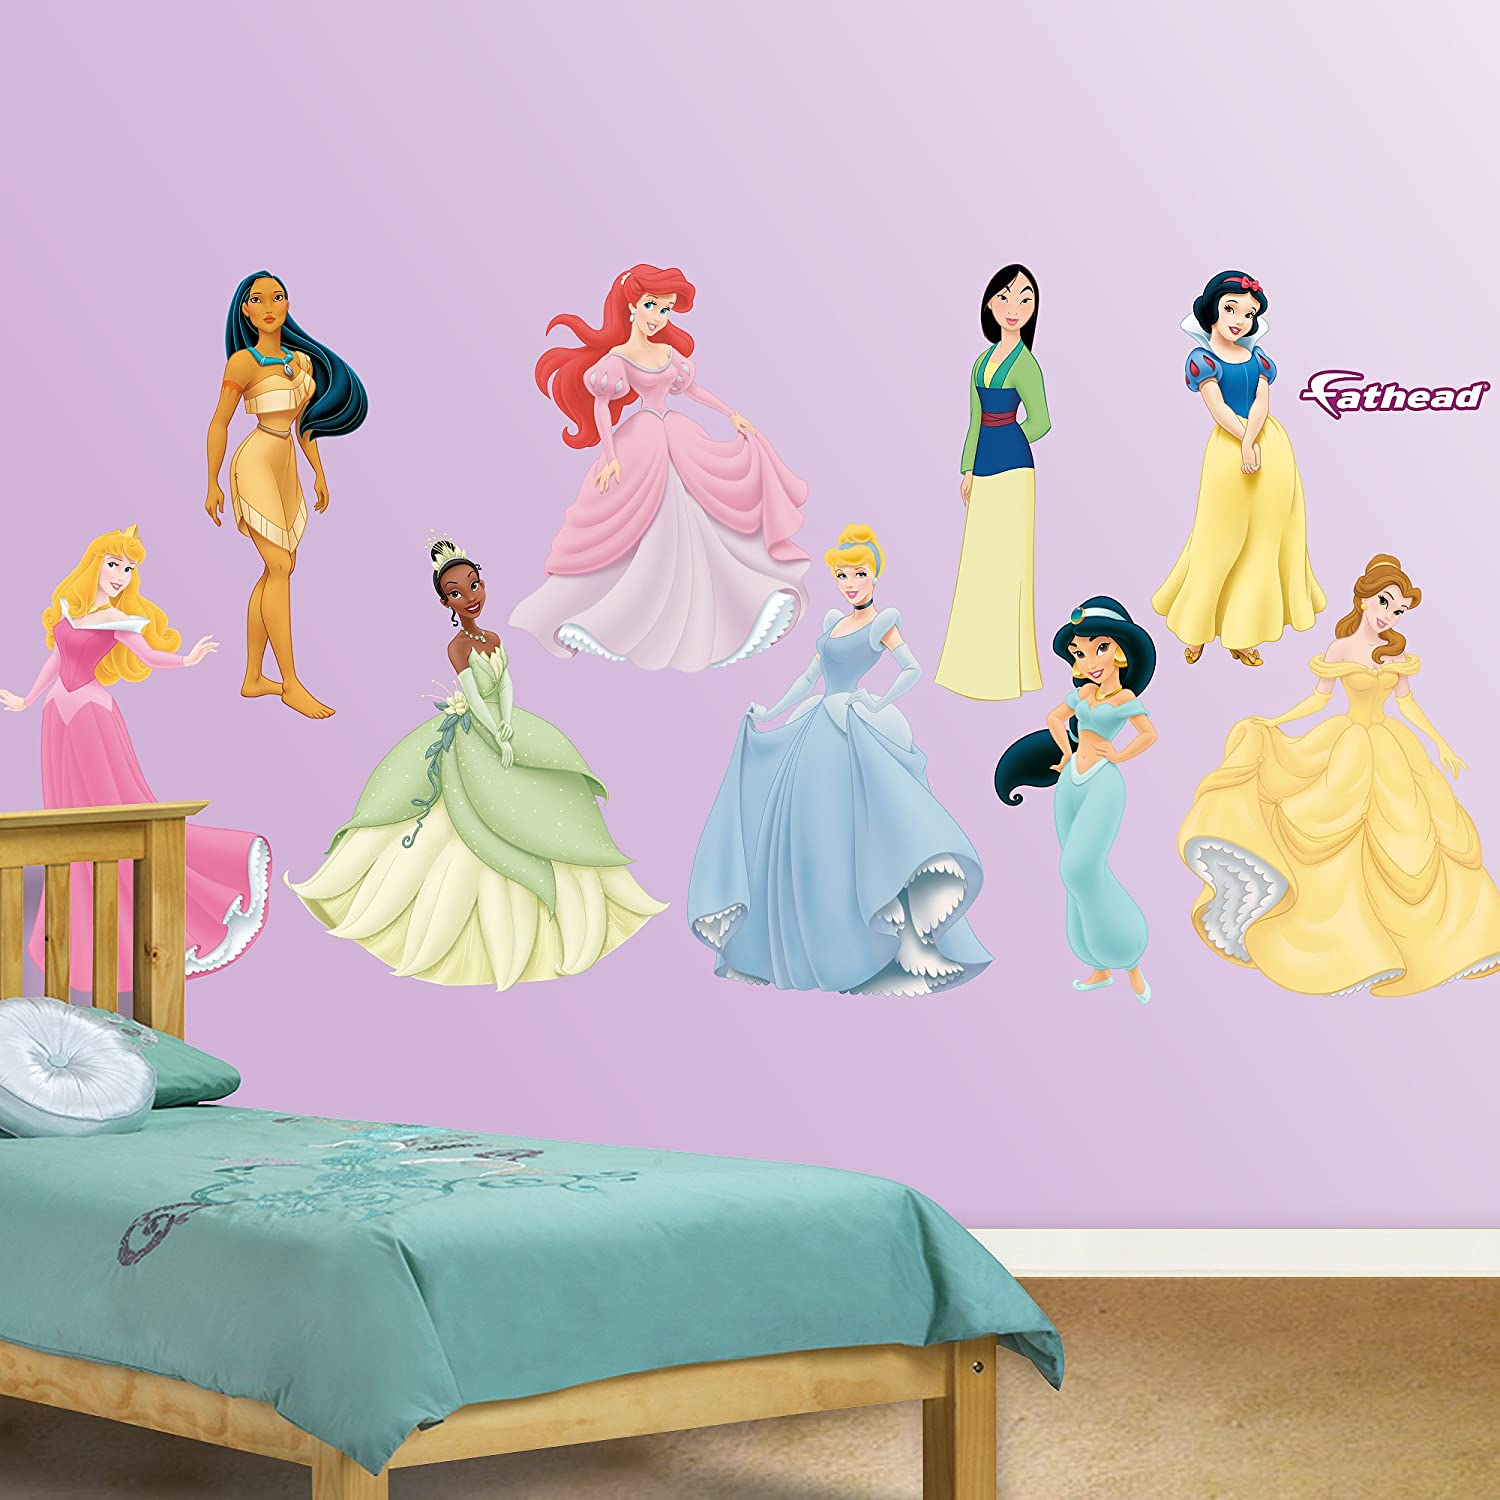 Genial Amazon.com: FATHEAD Disney Princess Collection Graphic Wall Décor: Home U0026  Kitchen